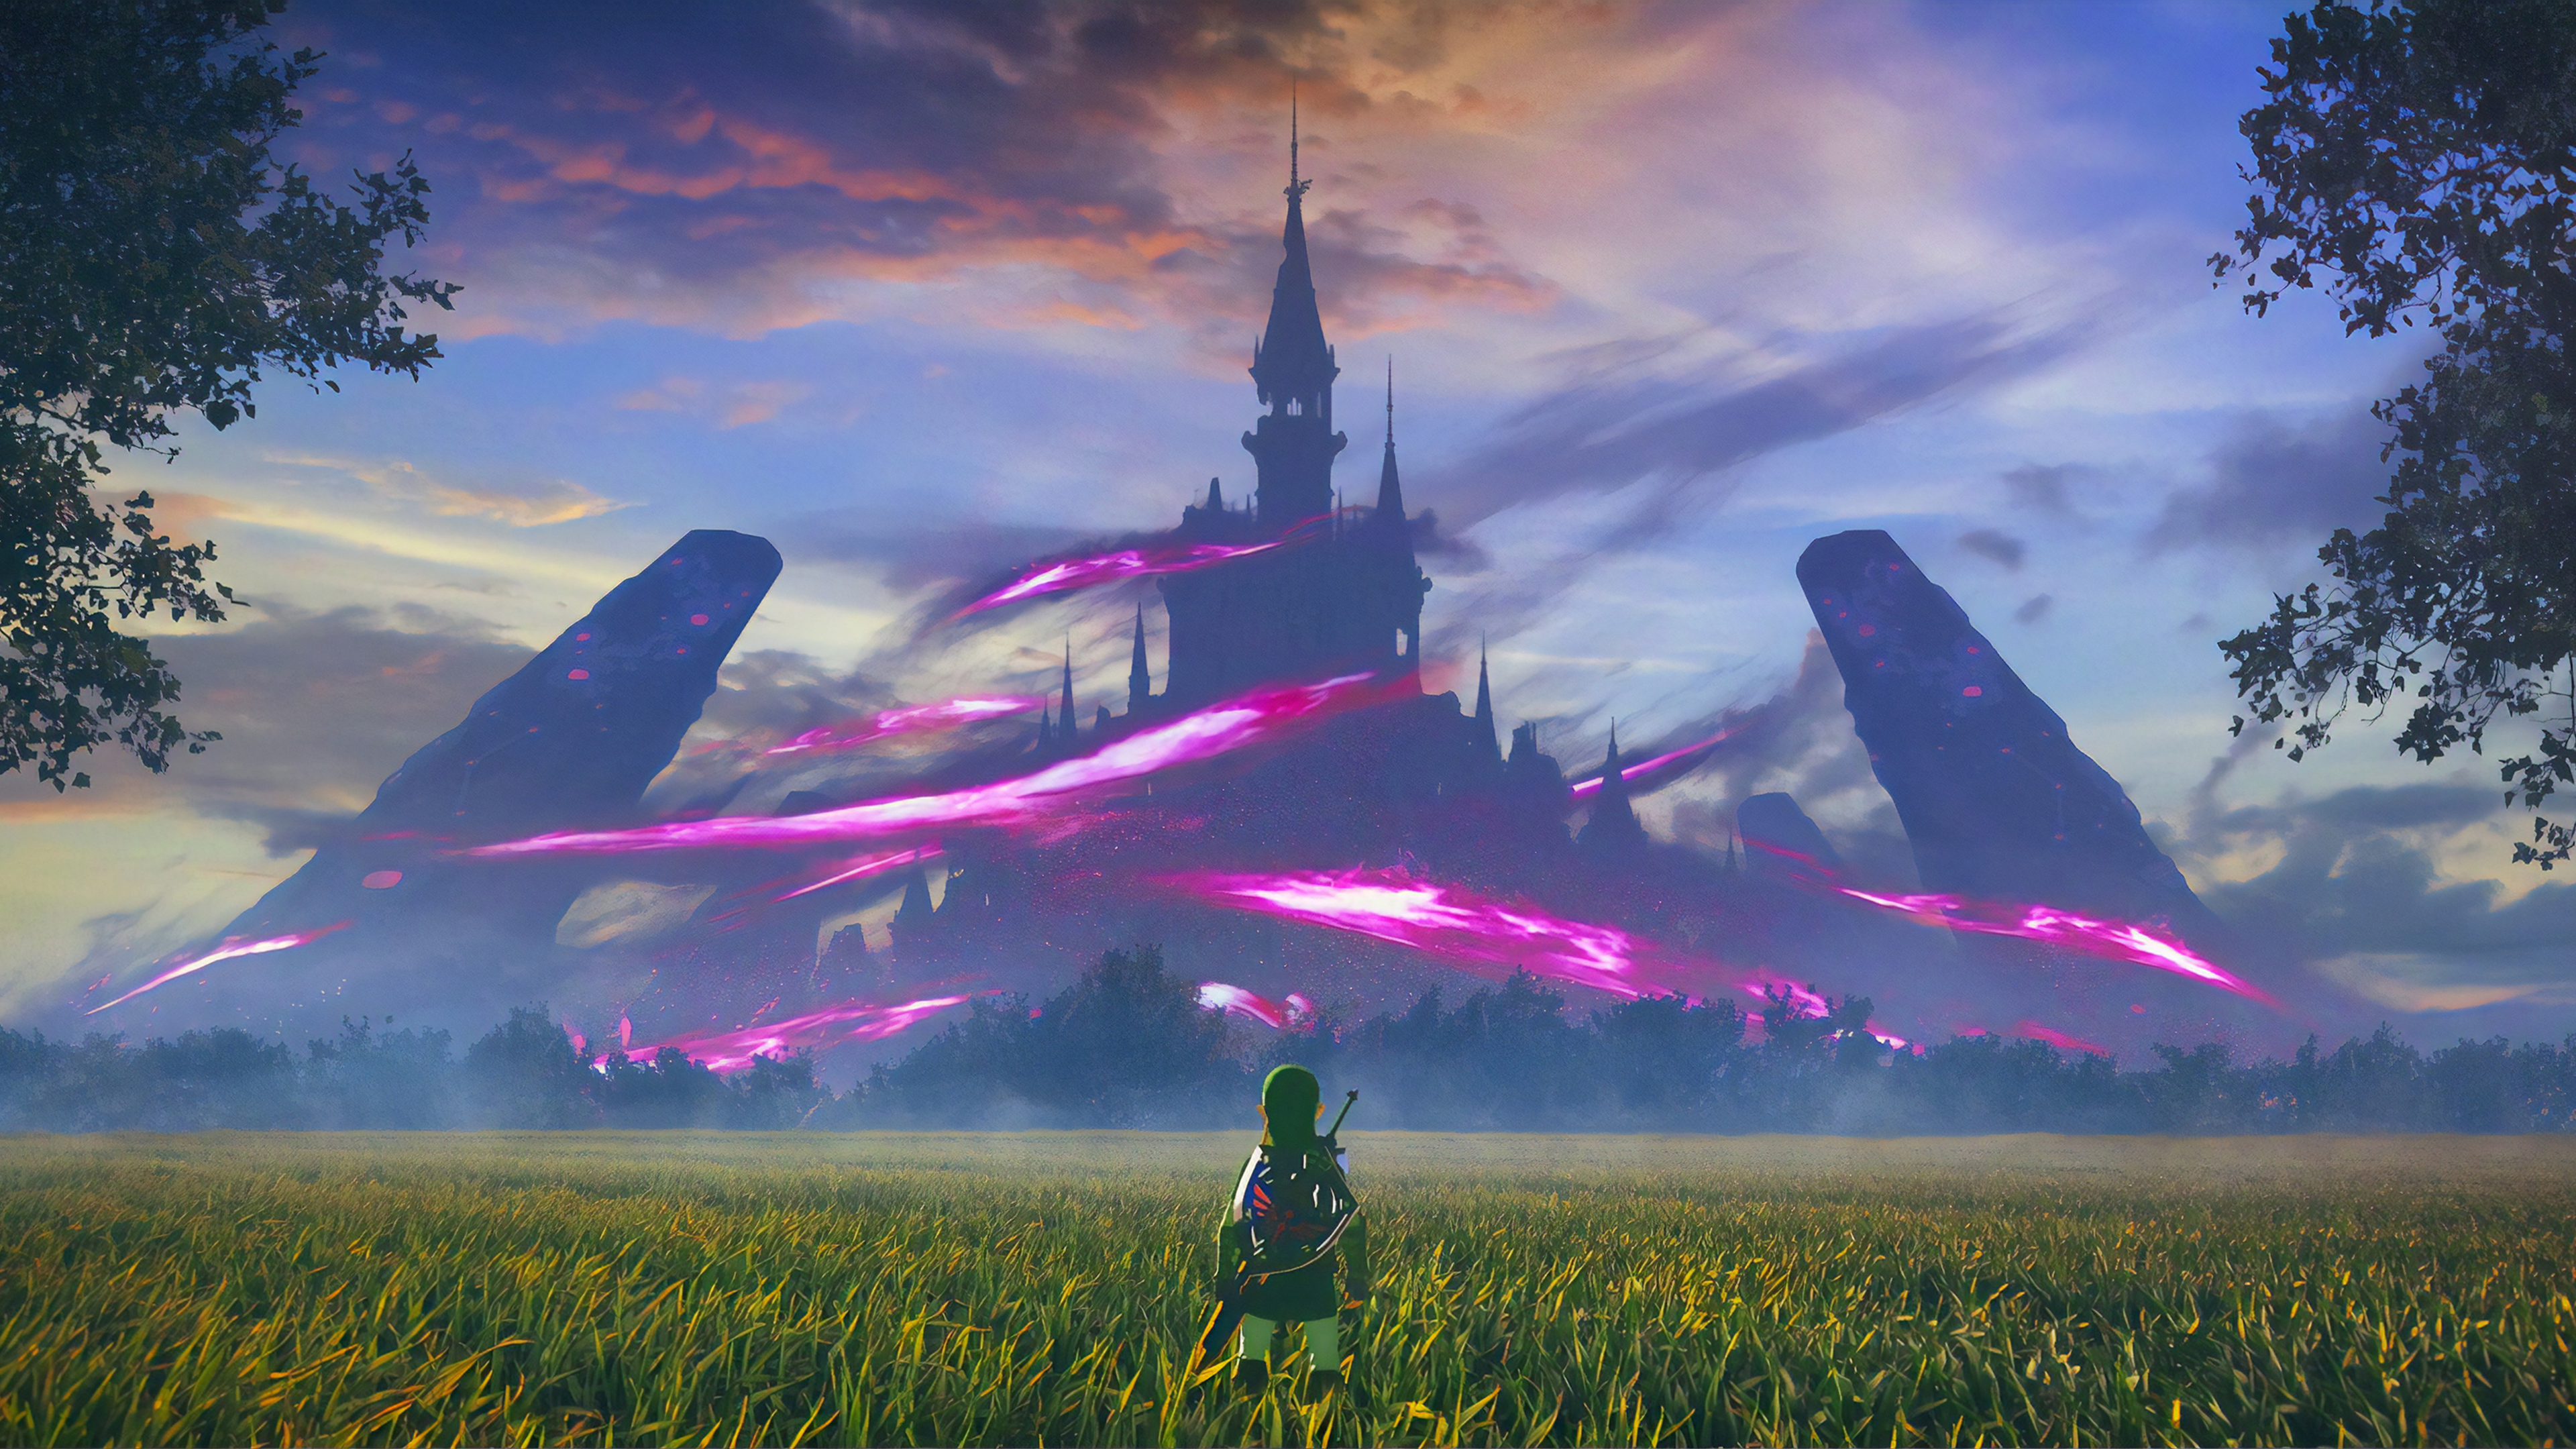 zelda 1572369745 - Zelda - the legend of zelda wallpapers, hd-wallpapers, games wallpapers, deviantart wallpapers, 4k-wallpapers, 2019 games wallpapers